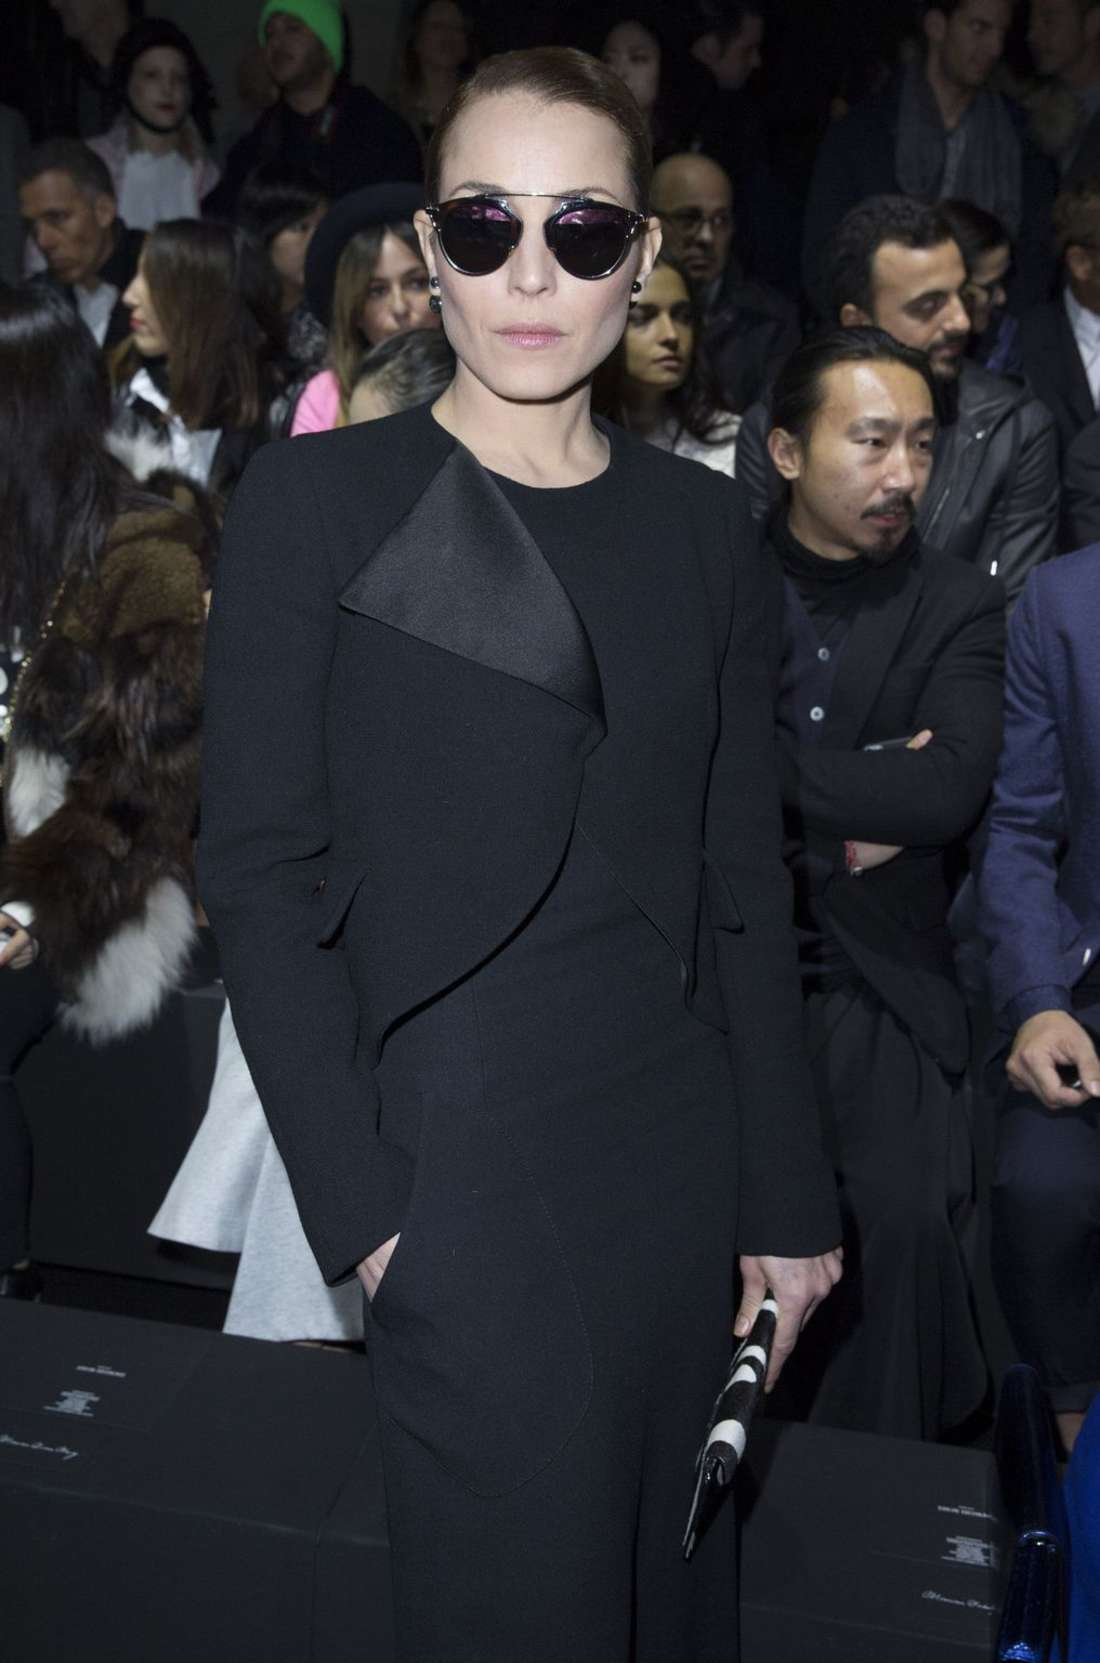 Noomi Rapace at Dior Menswear Show in Paris